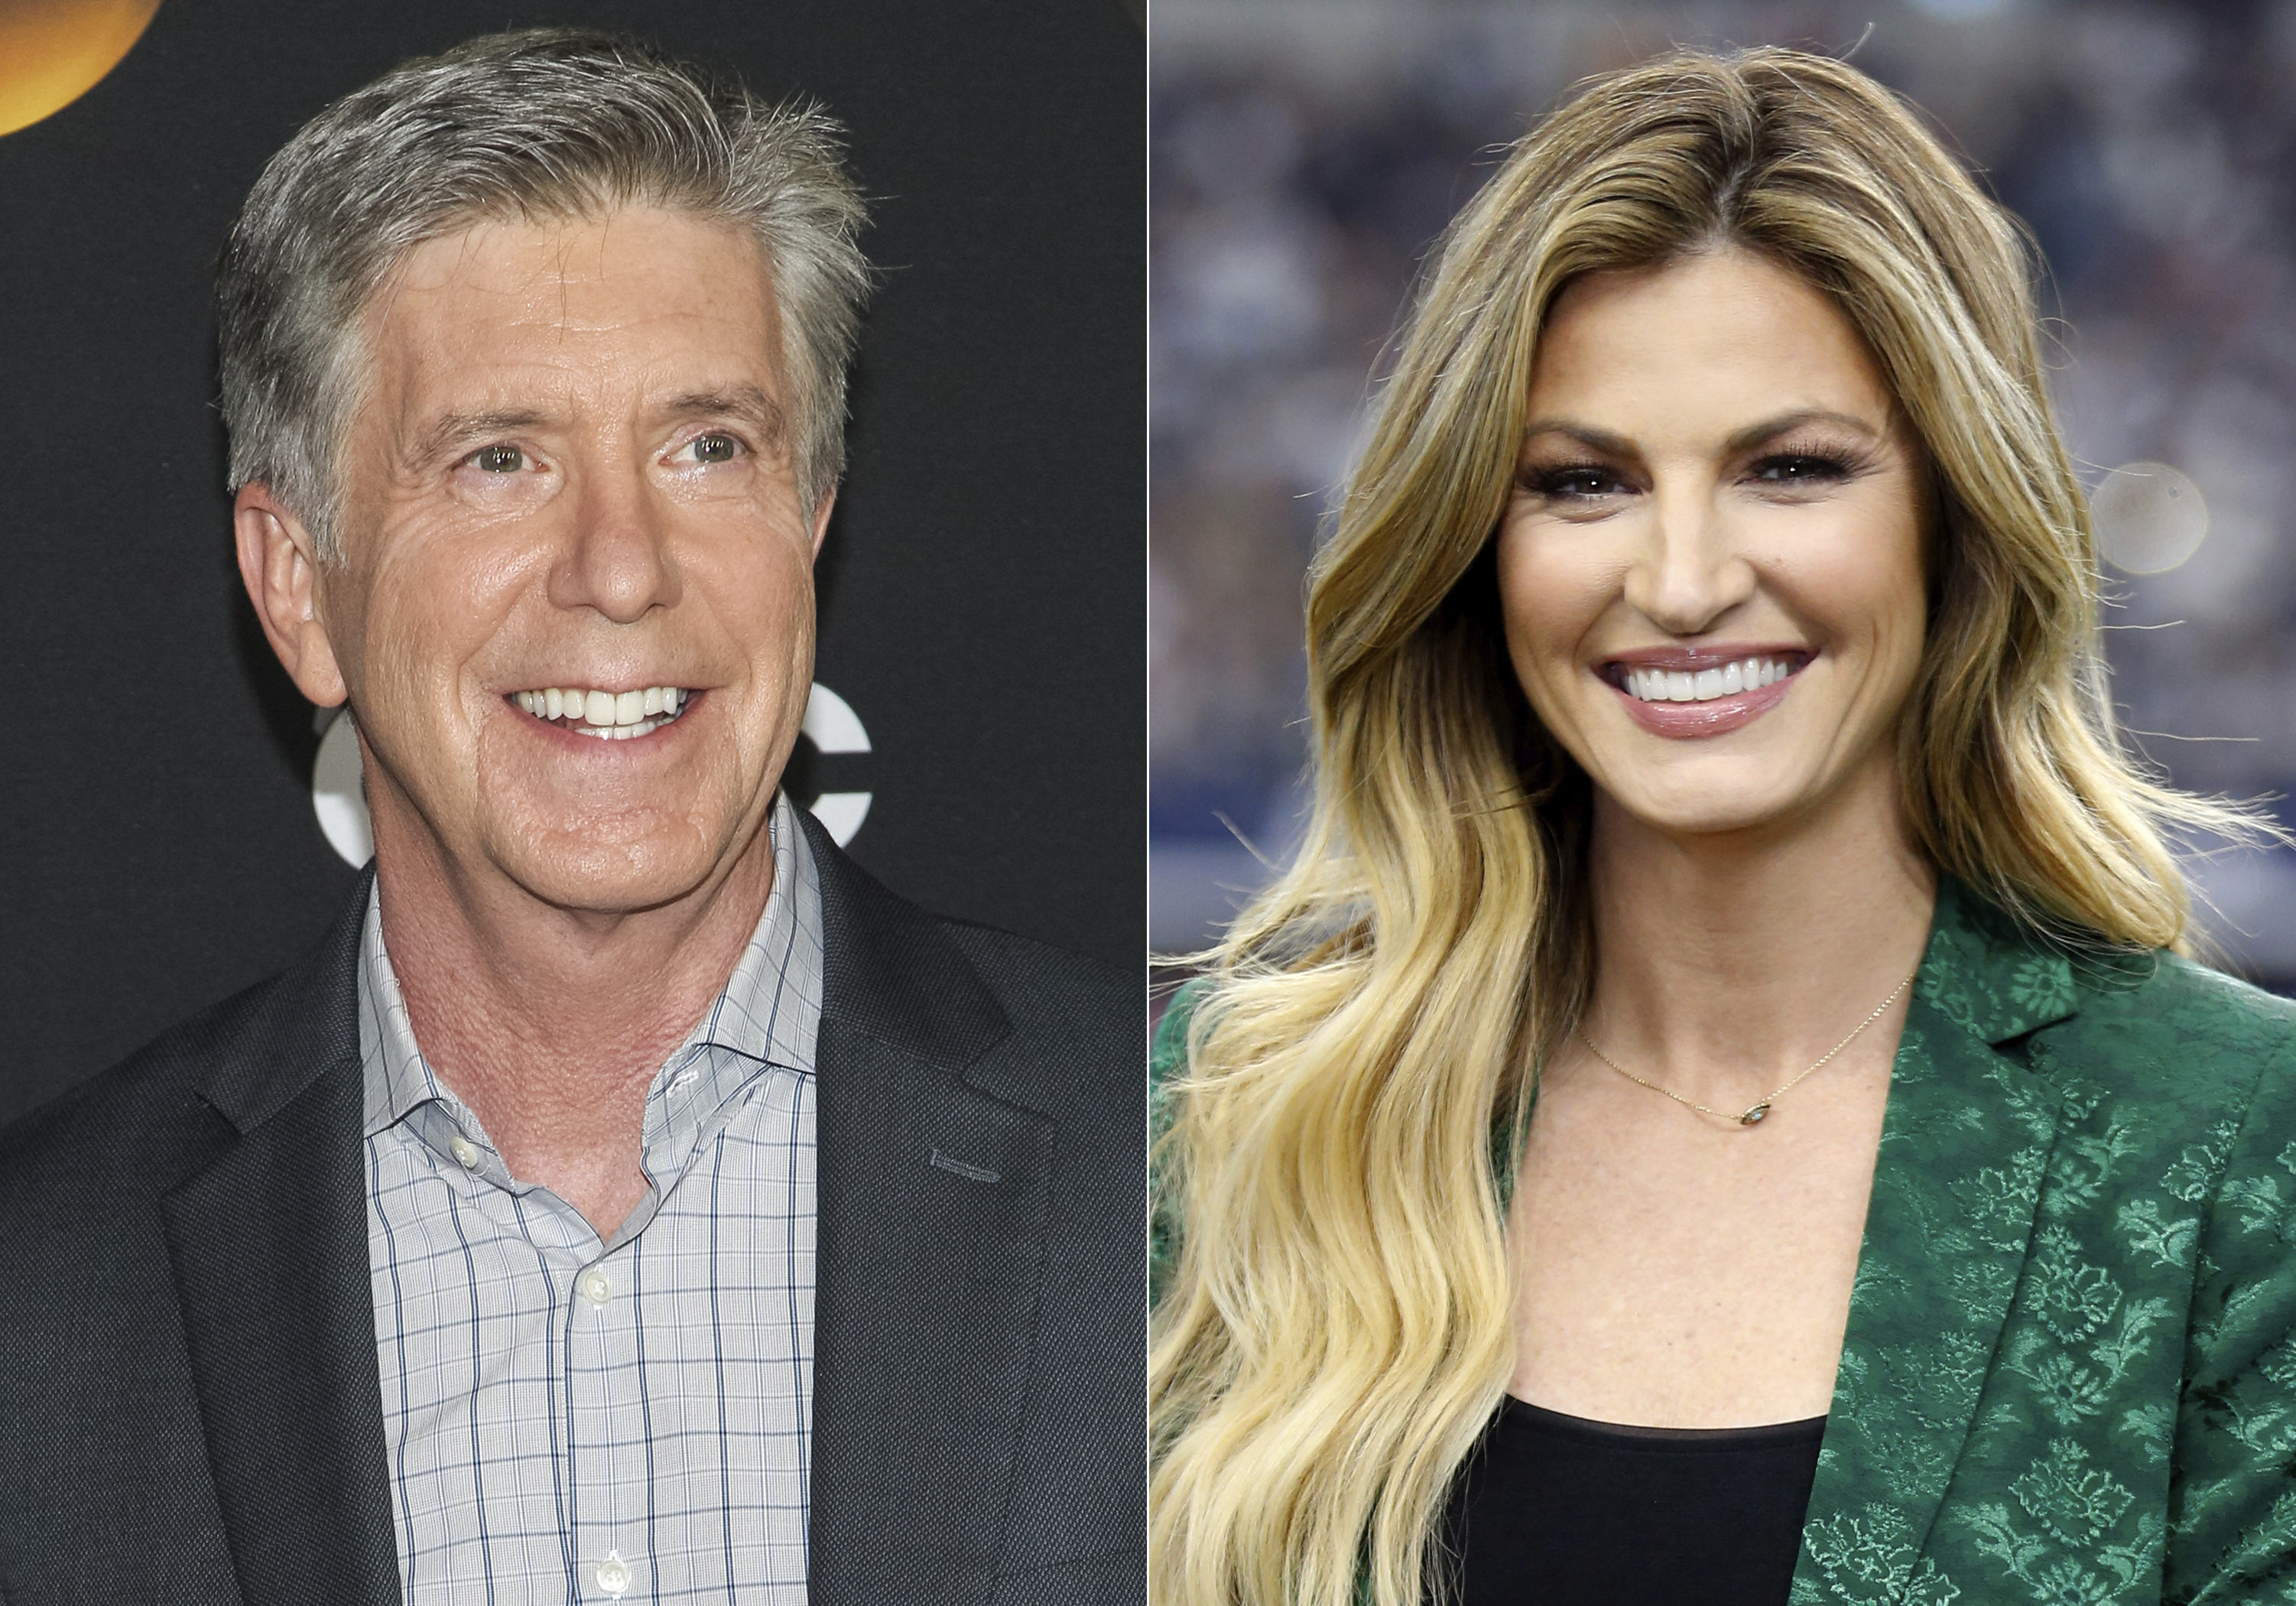 This combination photo shows  Dancing With the Stars  co-hosts, Tom Bergeron, left, and Erin Andrews who will not be returning to the popular celebrity dance competition series.